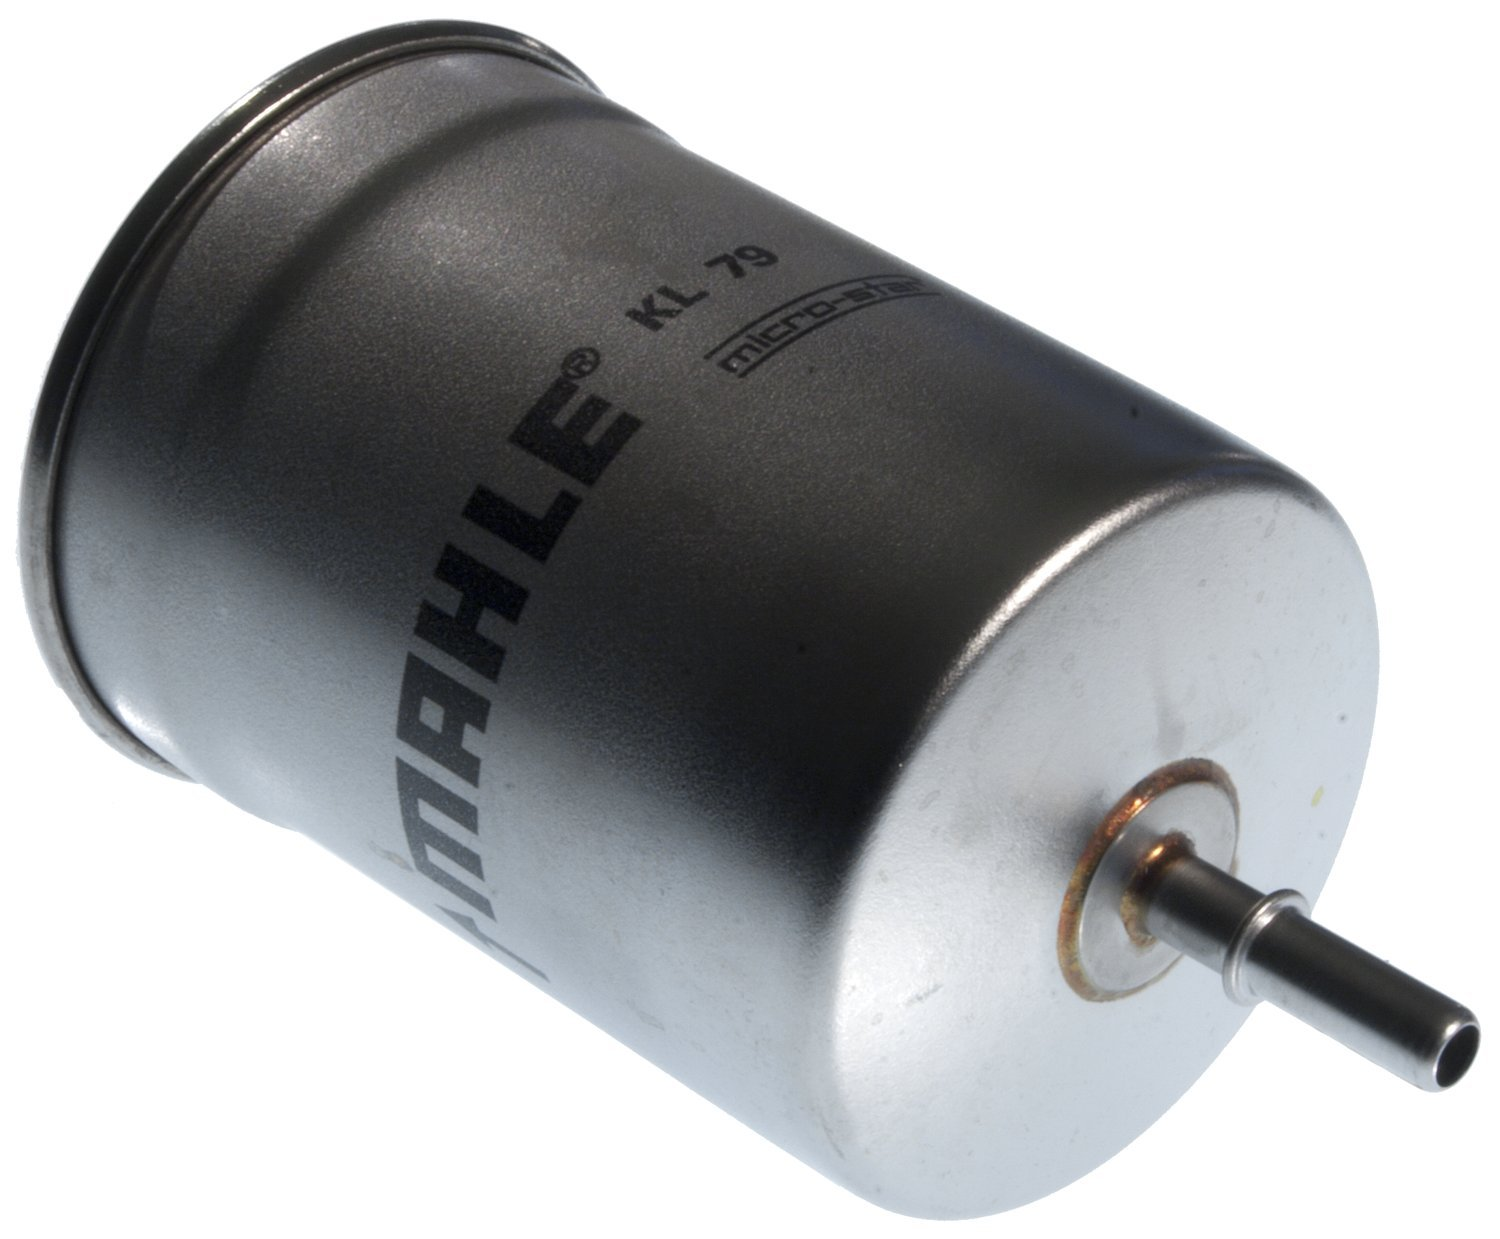 Mahle Original Kl 79 Fuel Filter Automotive Audi